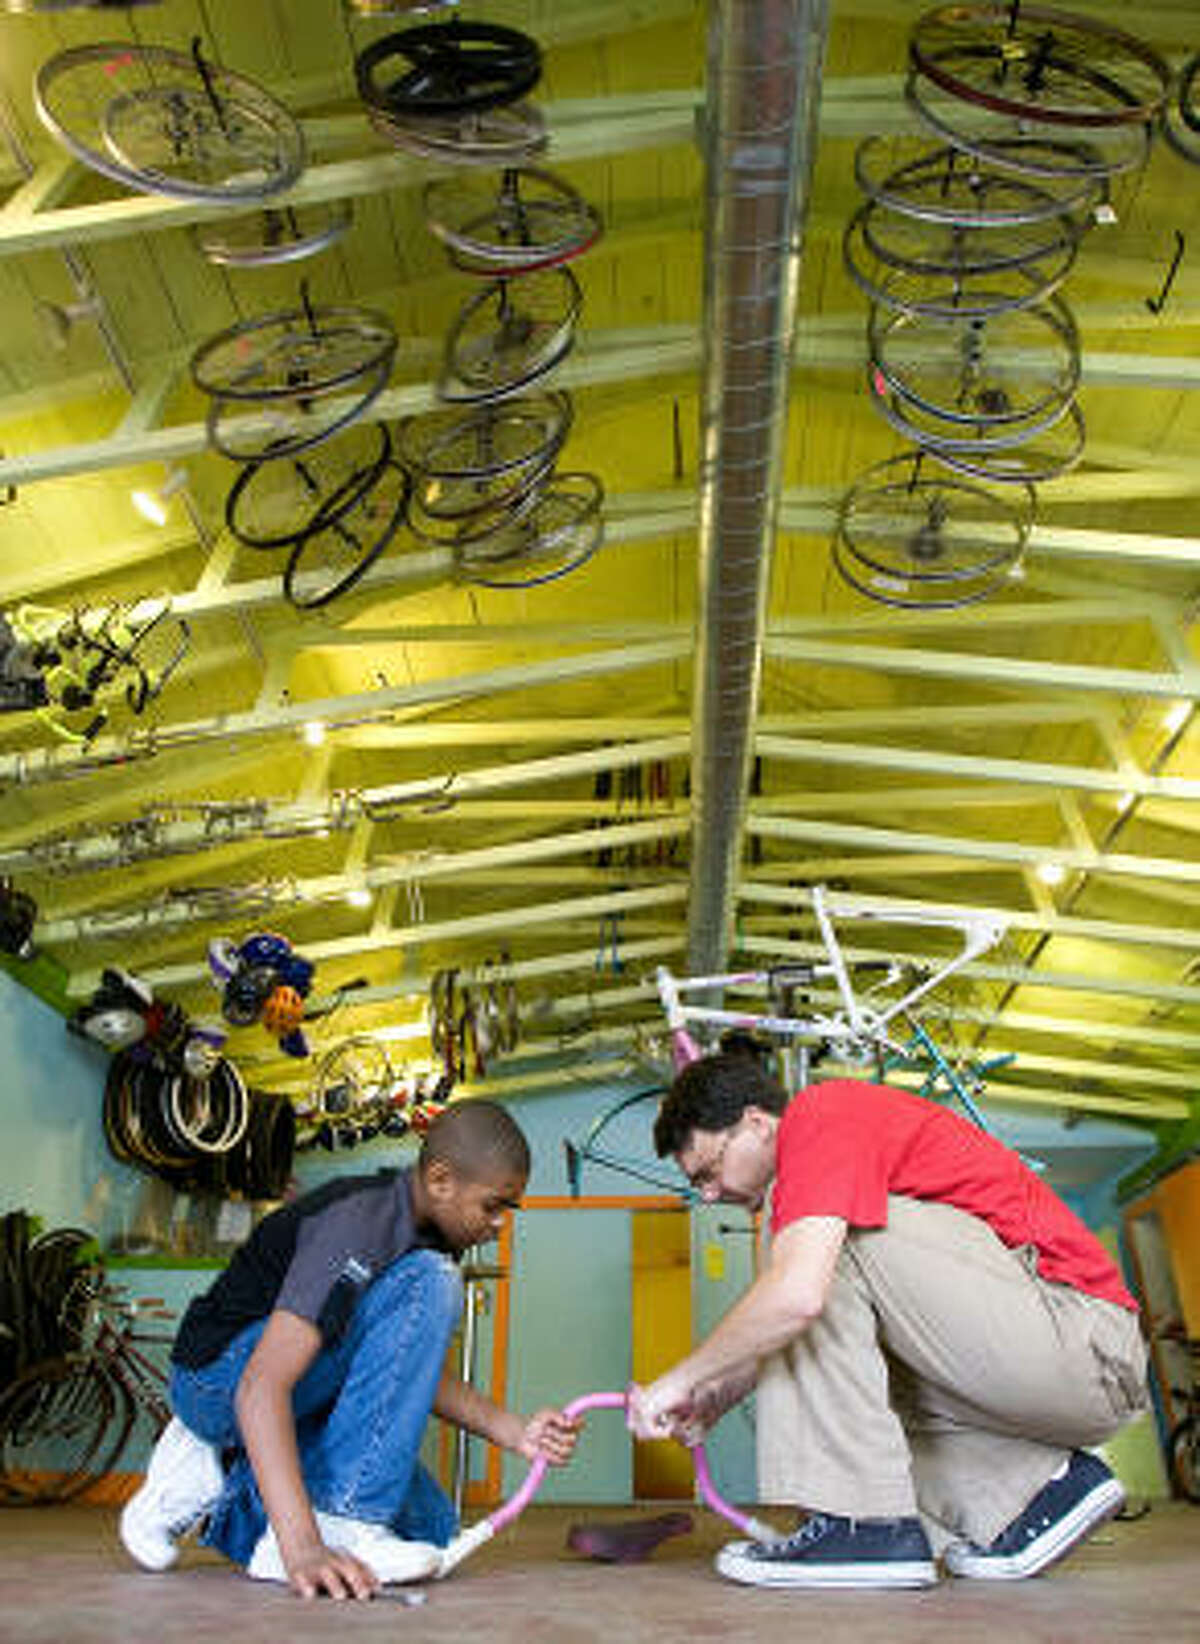 Kendrian Beverly, 11, and Jake Goldstein, a volunteer, strip a bike for parts at the Third Ward Bike Shop in Houston. Beverly fixed a bike for his sister for Christmas and built one for himself.